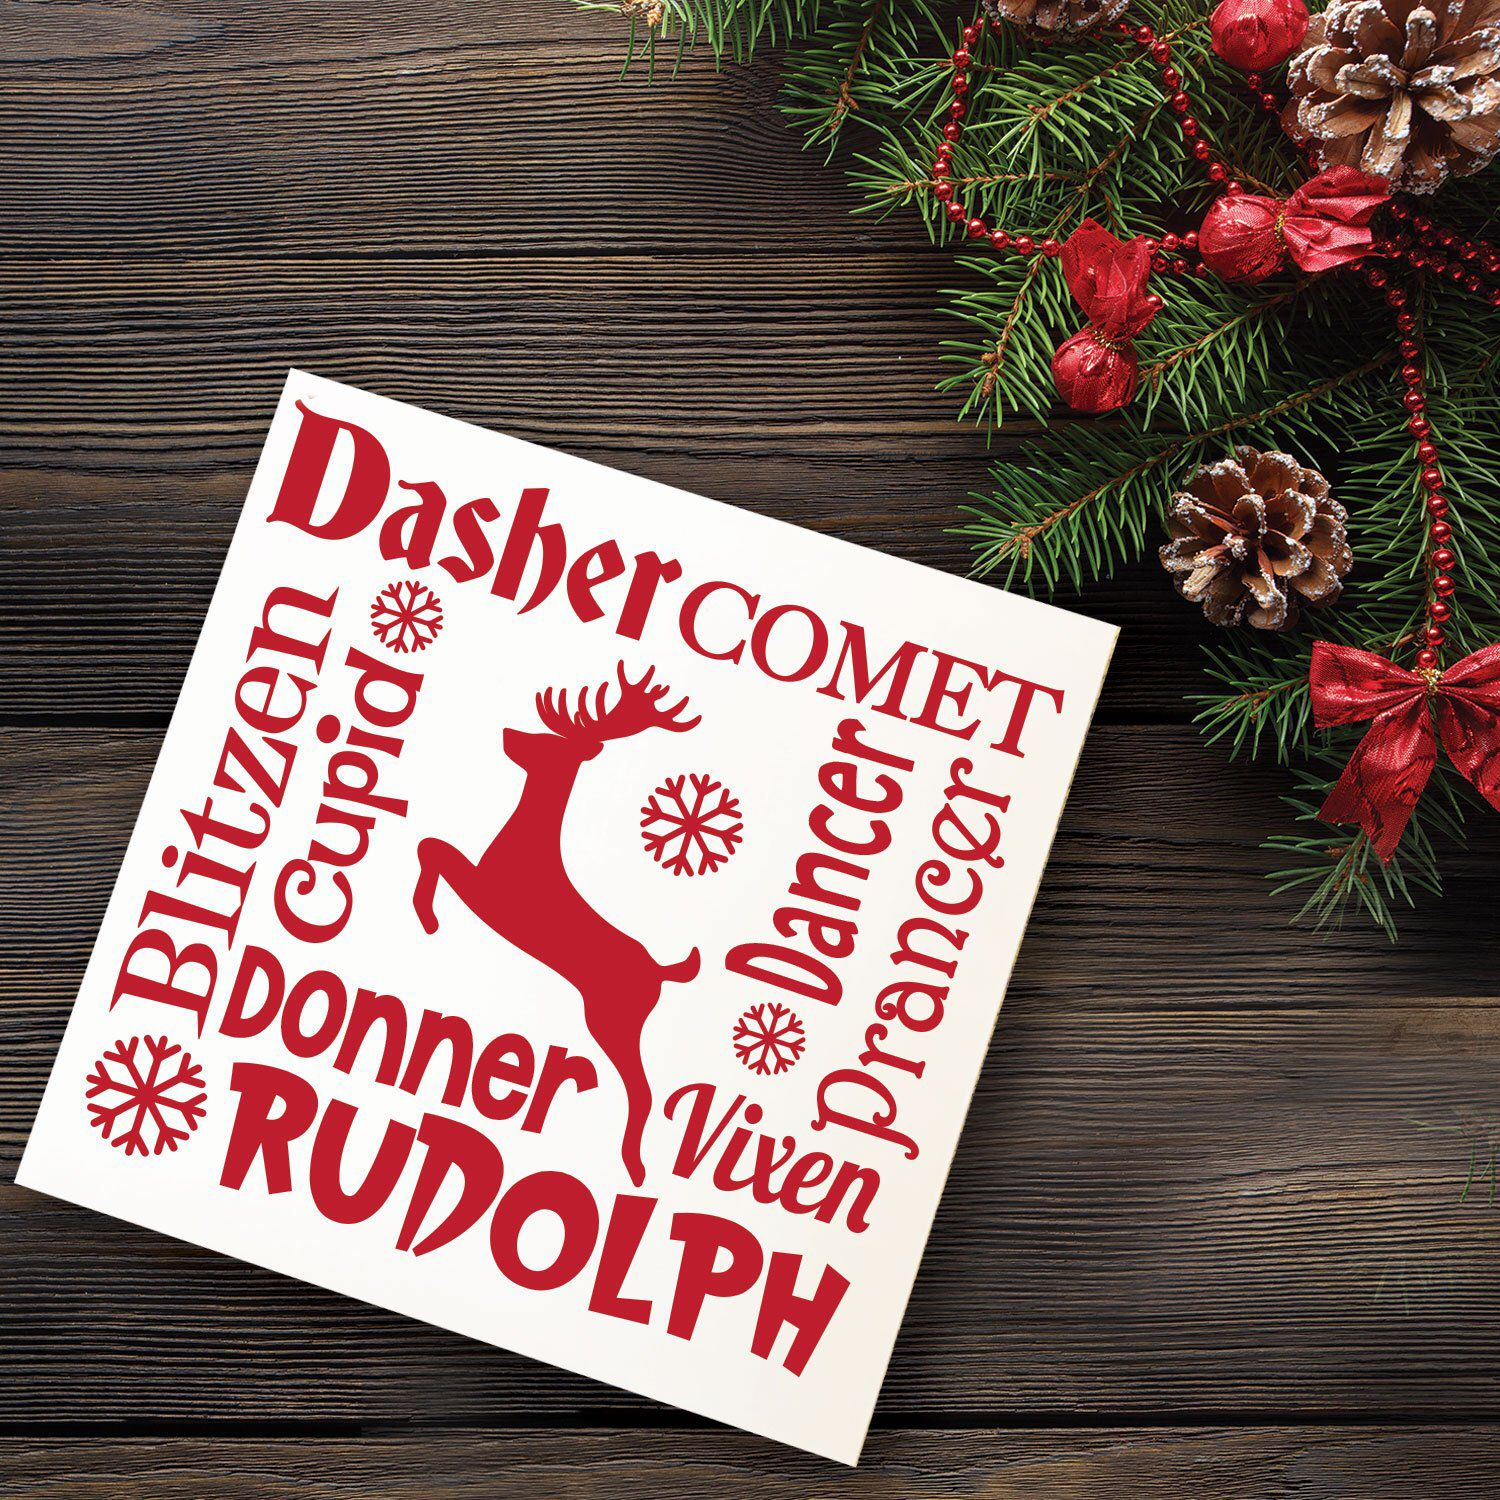 Christmas Reindeer Names Wooden Sign The Eight Reindeer And